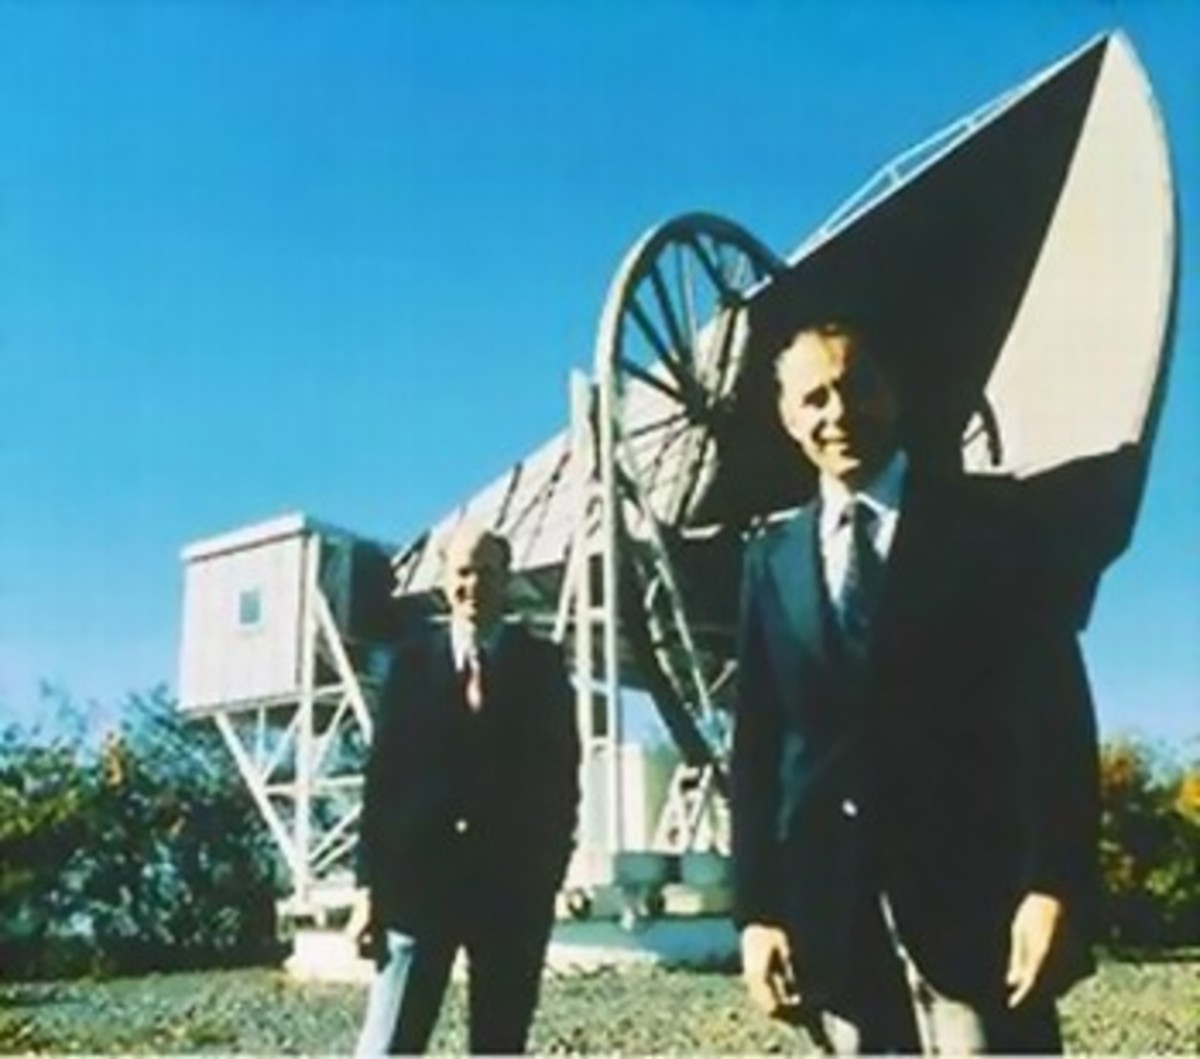 A photograph of Arno Penzias and Robert Wilson standing next to a radio telescope